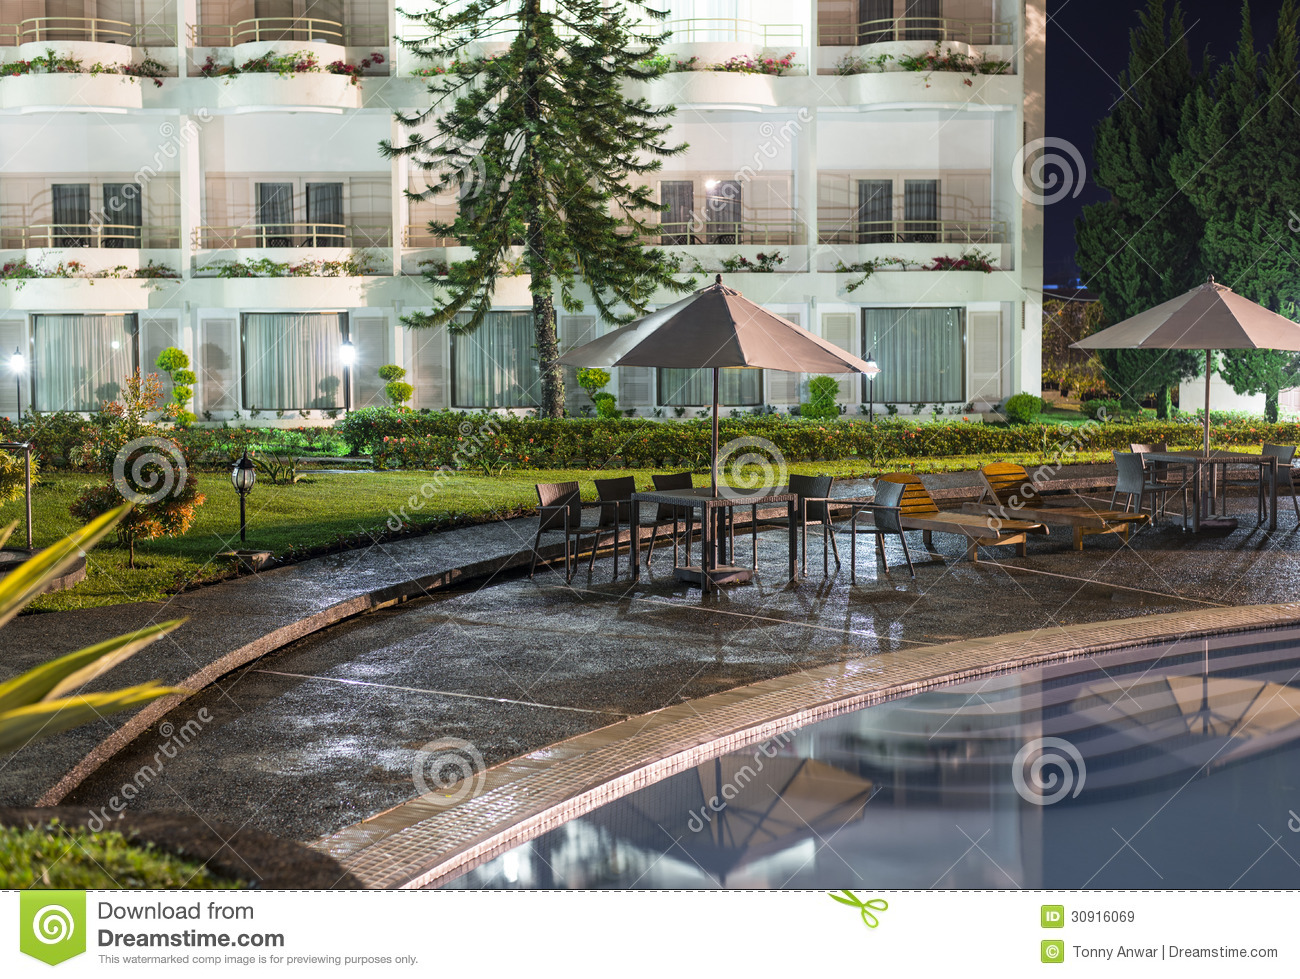 Resort hotel royalty free stock images image 30916069 - Hotel with swimming pool on balcony ...